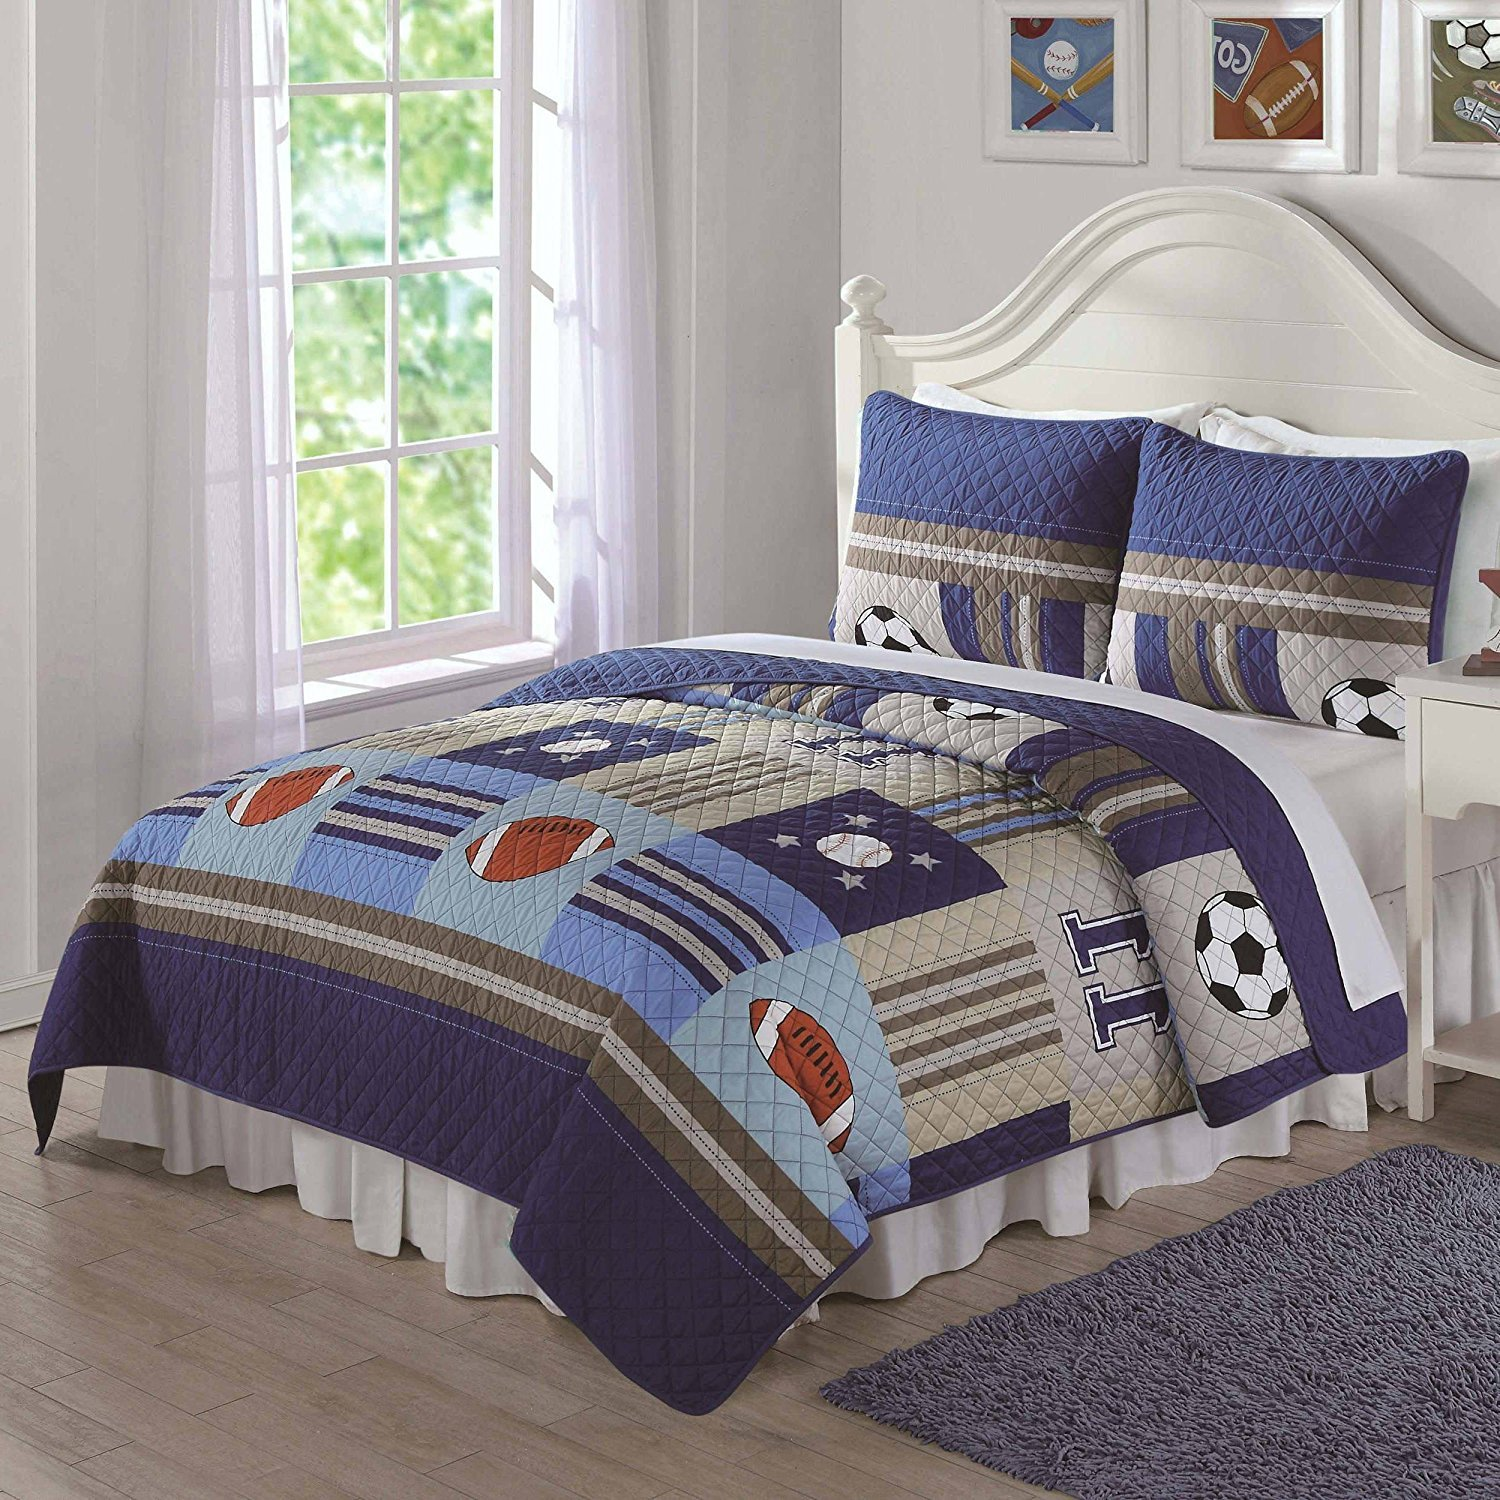 3pc Boys Tan Navy Royal Blue Grey Full Queen Quilt Set, Cotton, Sports Themed Kids Bedding Patchwork Graphic Soccer Football Baseball Striped Stylish Fun Colorful Bold Athlete, Microfiber